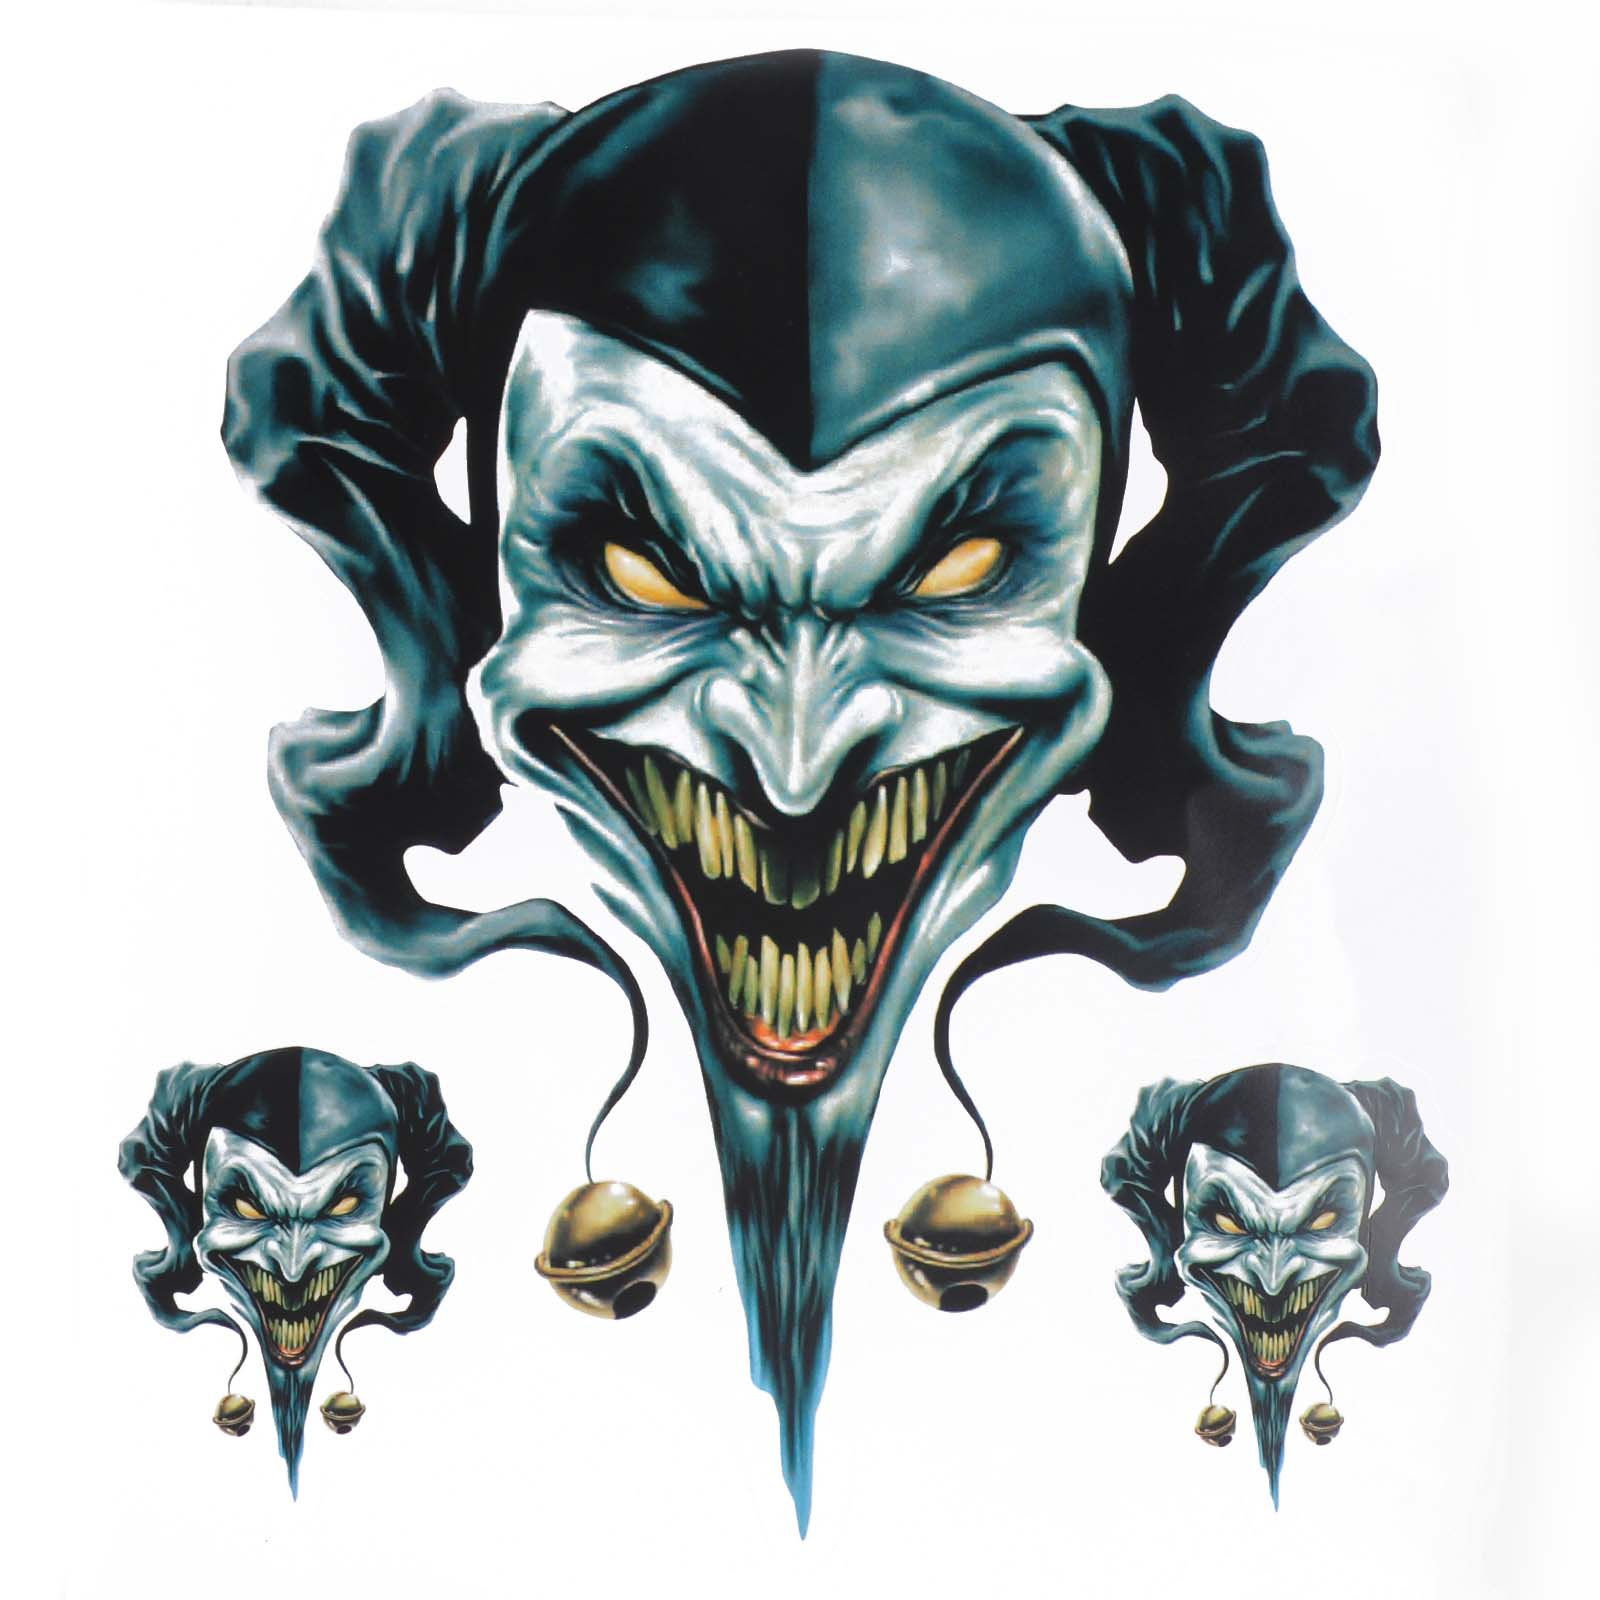 1 sheet 3pcs Clown Jester Graphic Sticker / Decal Set For Motorcycle Motorbike Auto Car